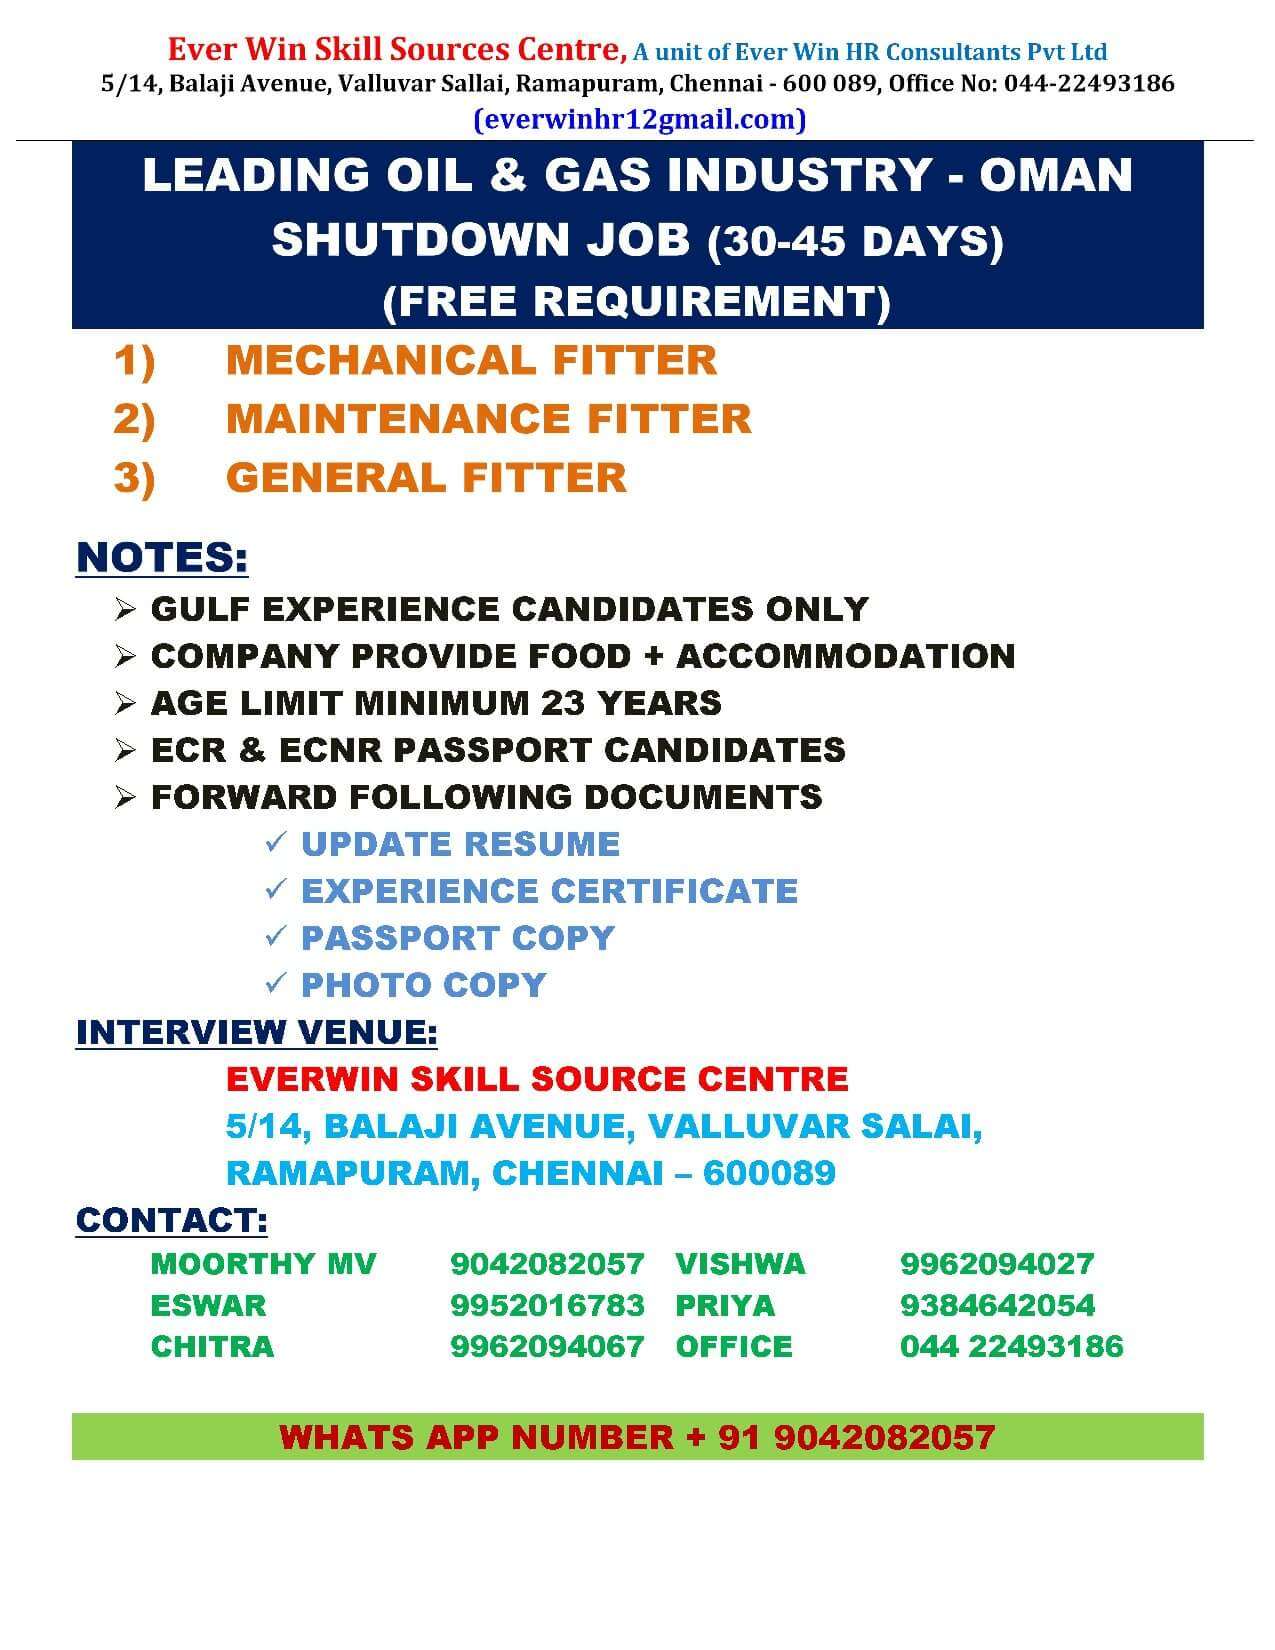 FREE REQUIREMENT FOR OIL & GAS INDUSTRY SHUTDOWN JOB IN OMAN